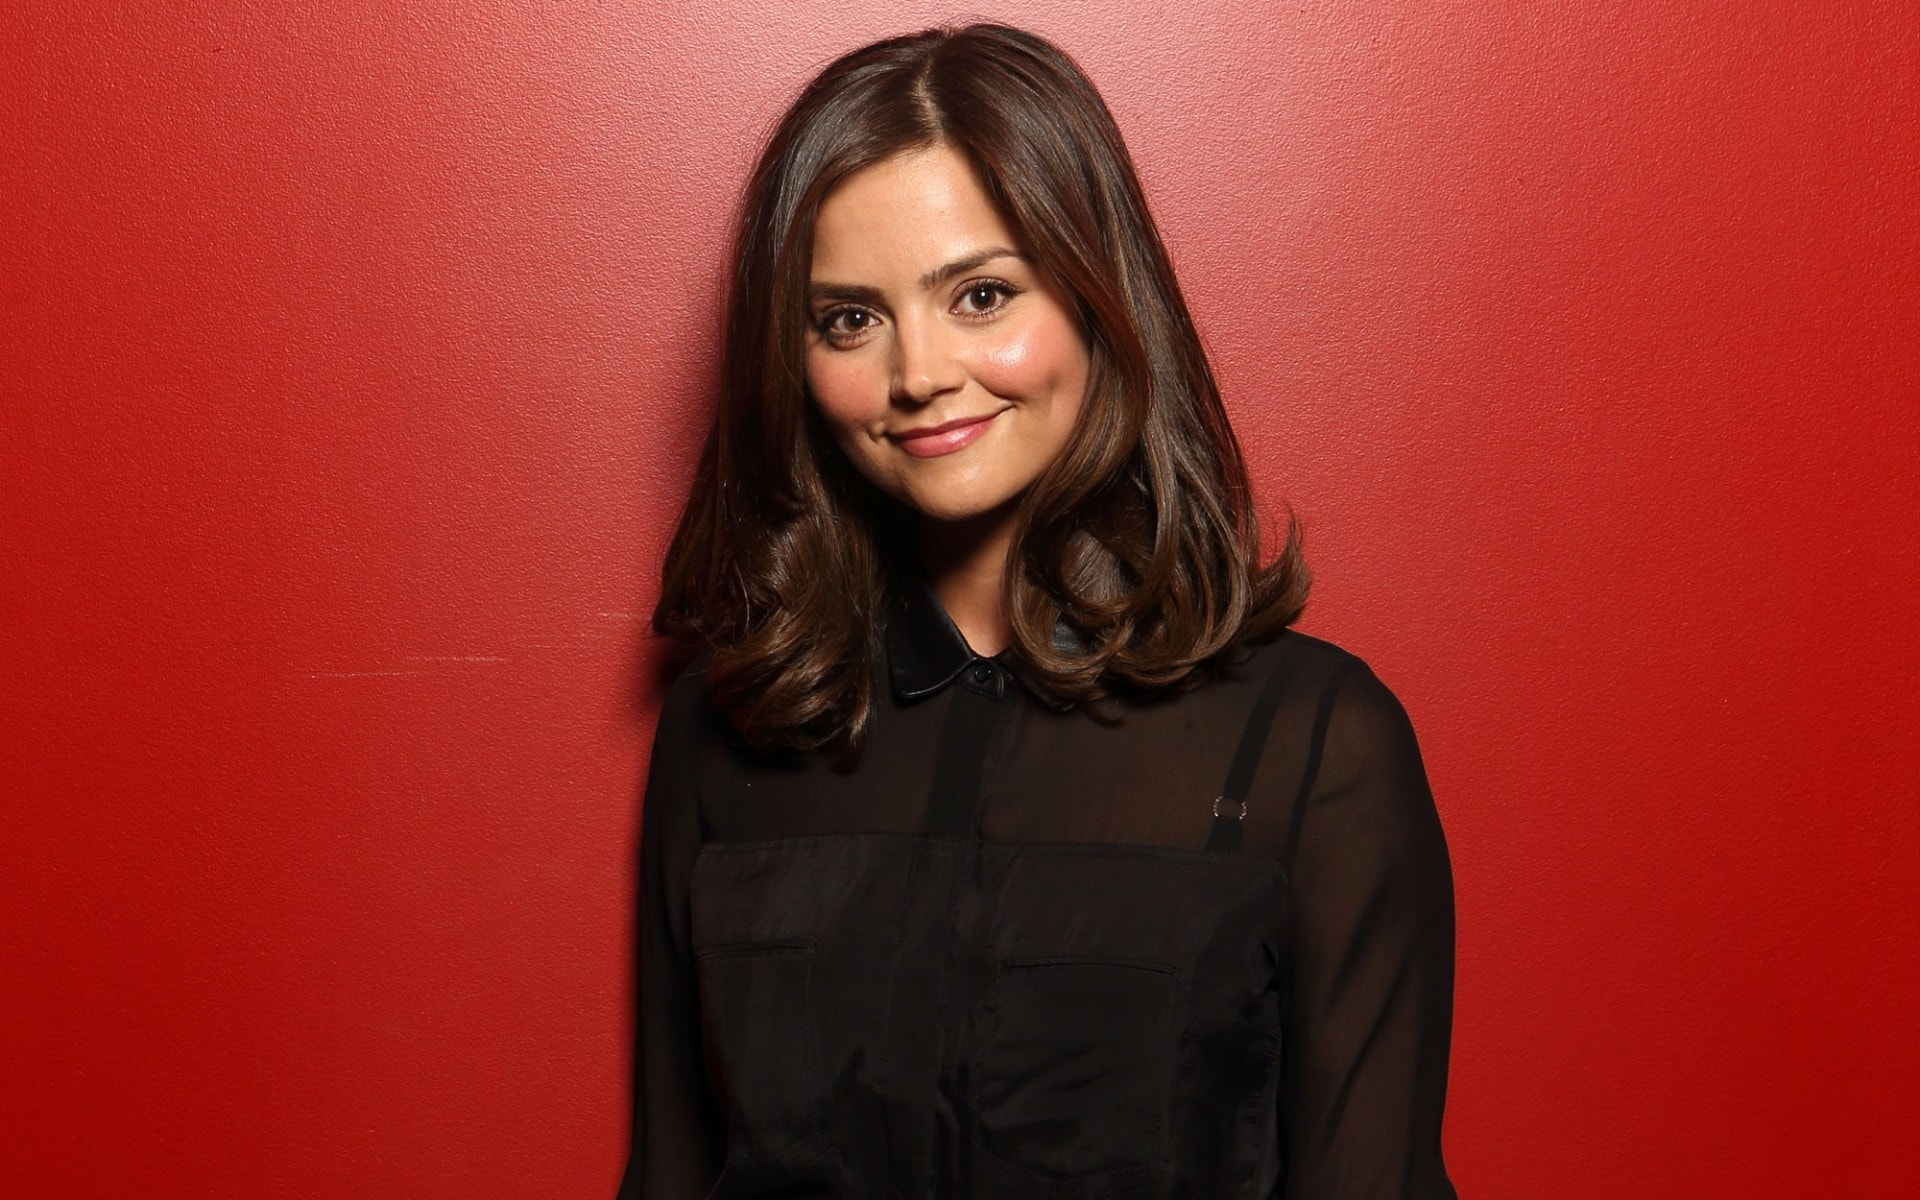 Jenna Coleman Download